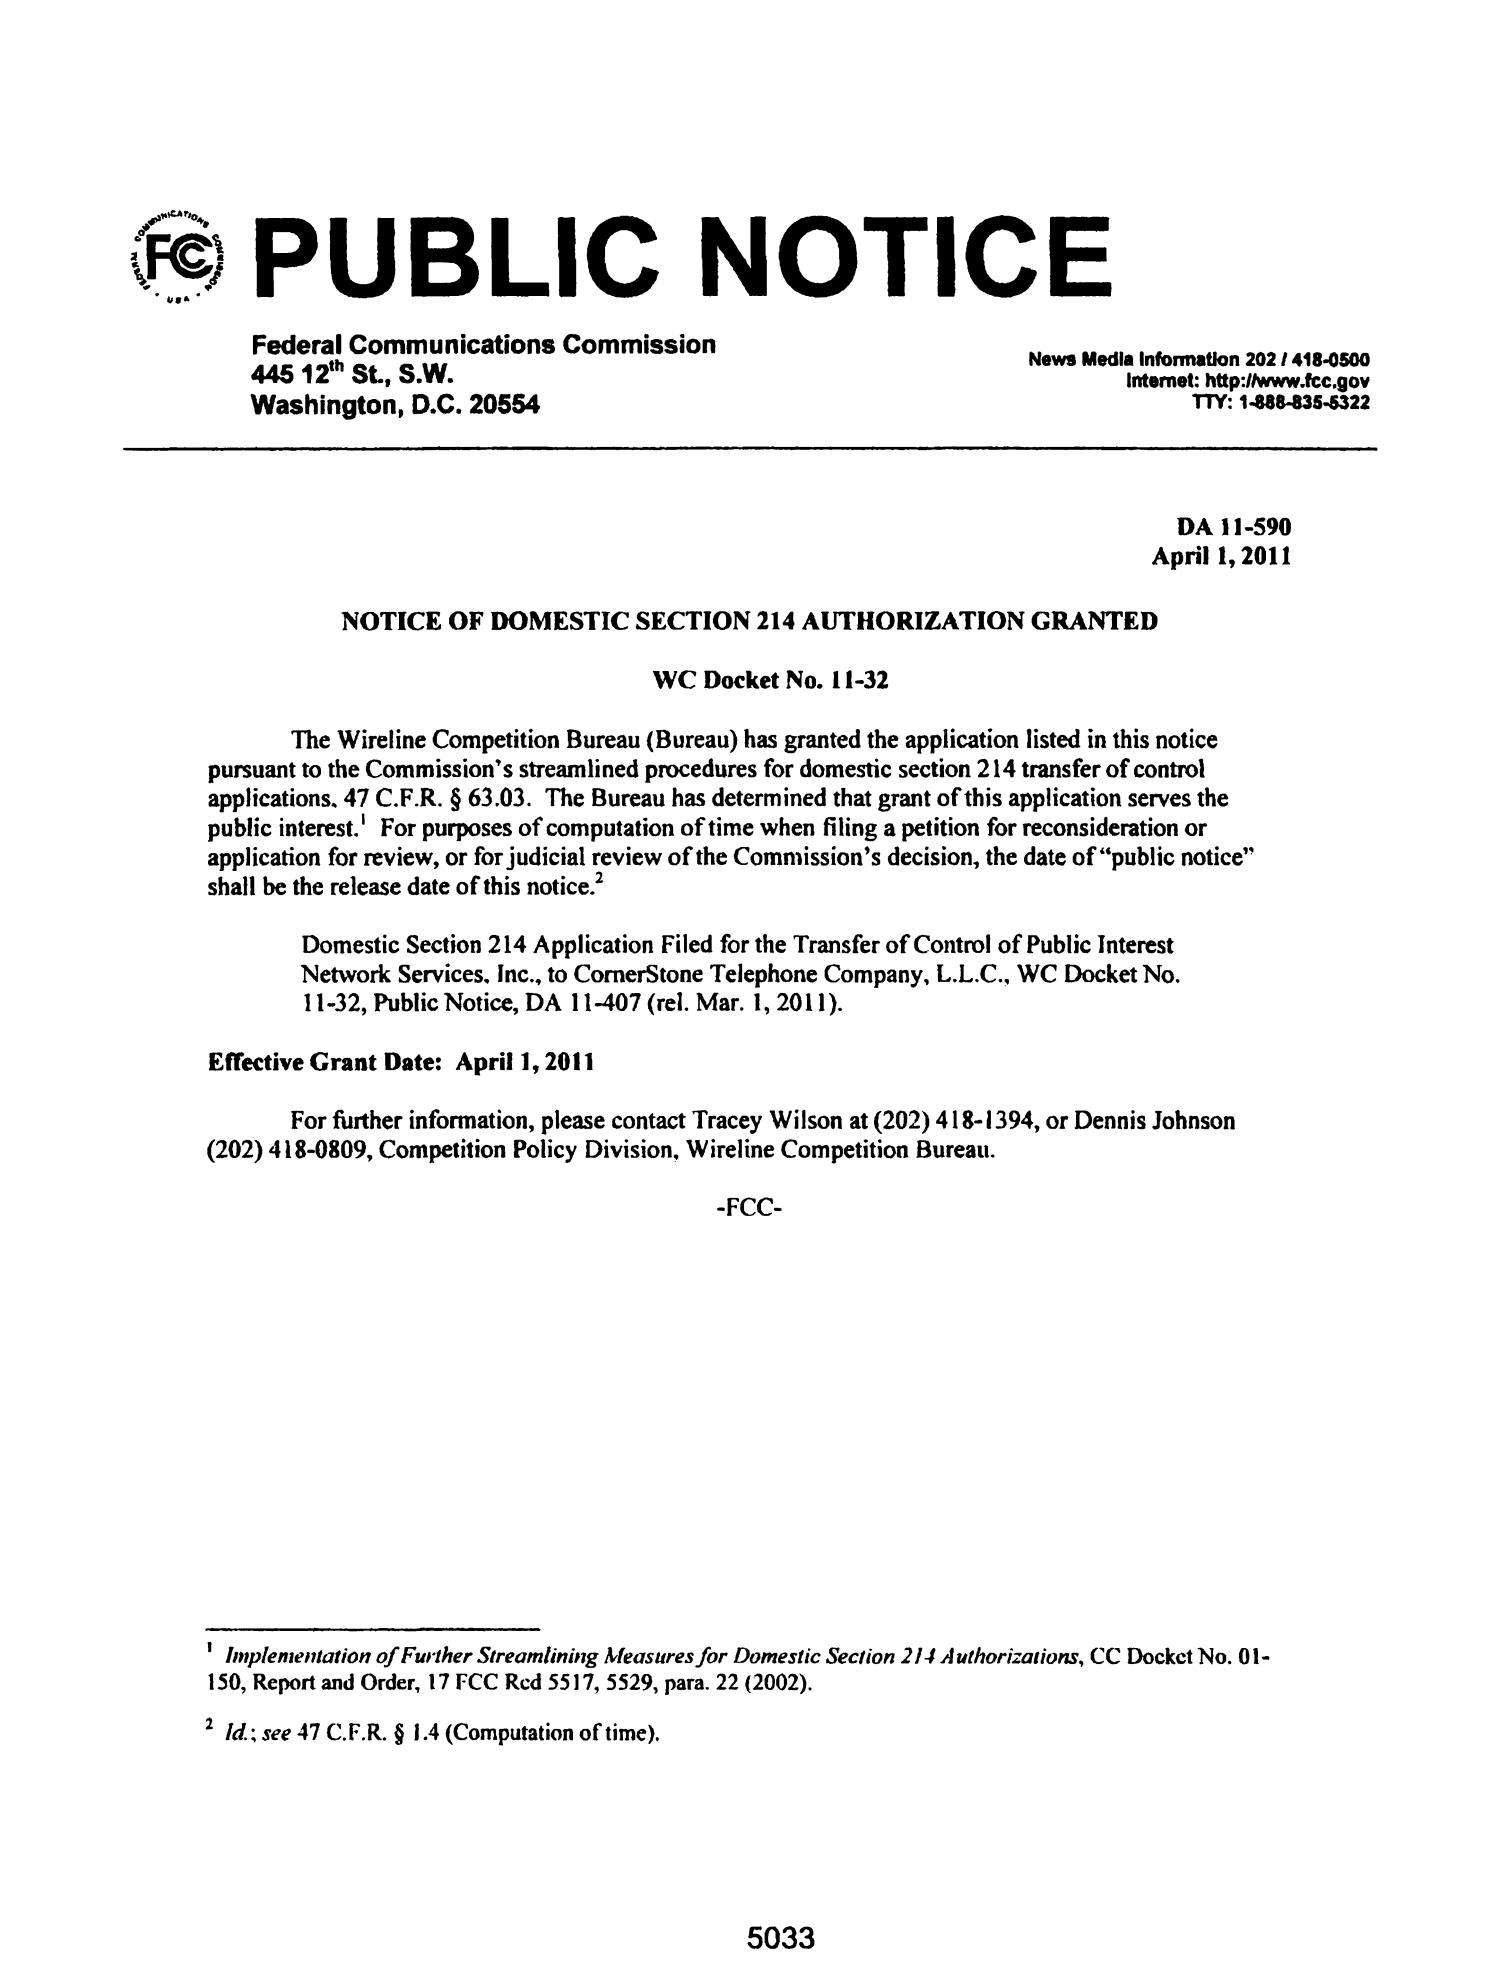 FCC Record, Volume 26, No. 7, Pages 4843 to 5761, March 28 - April 08, 2011                                                                                                      5033